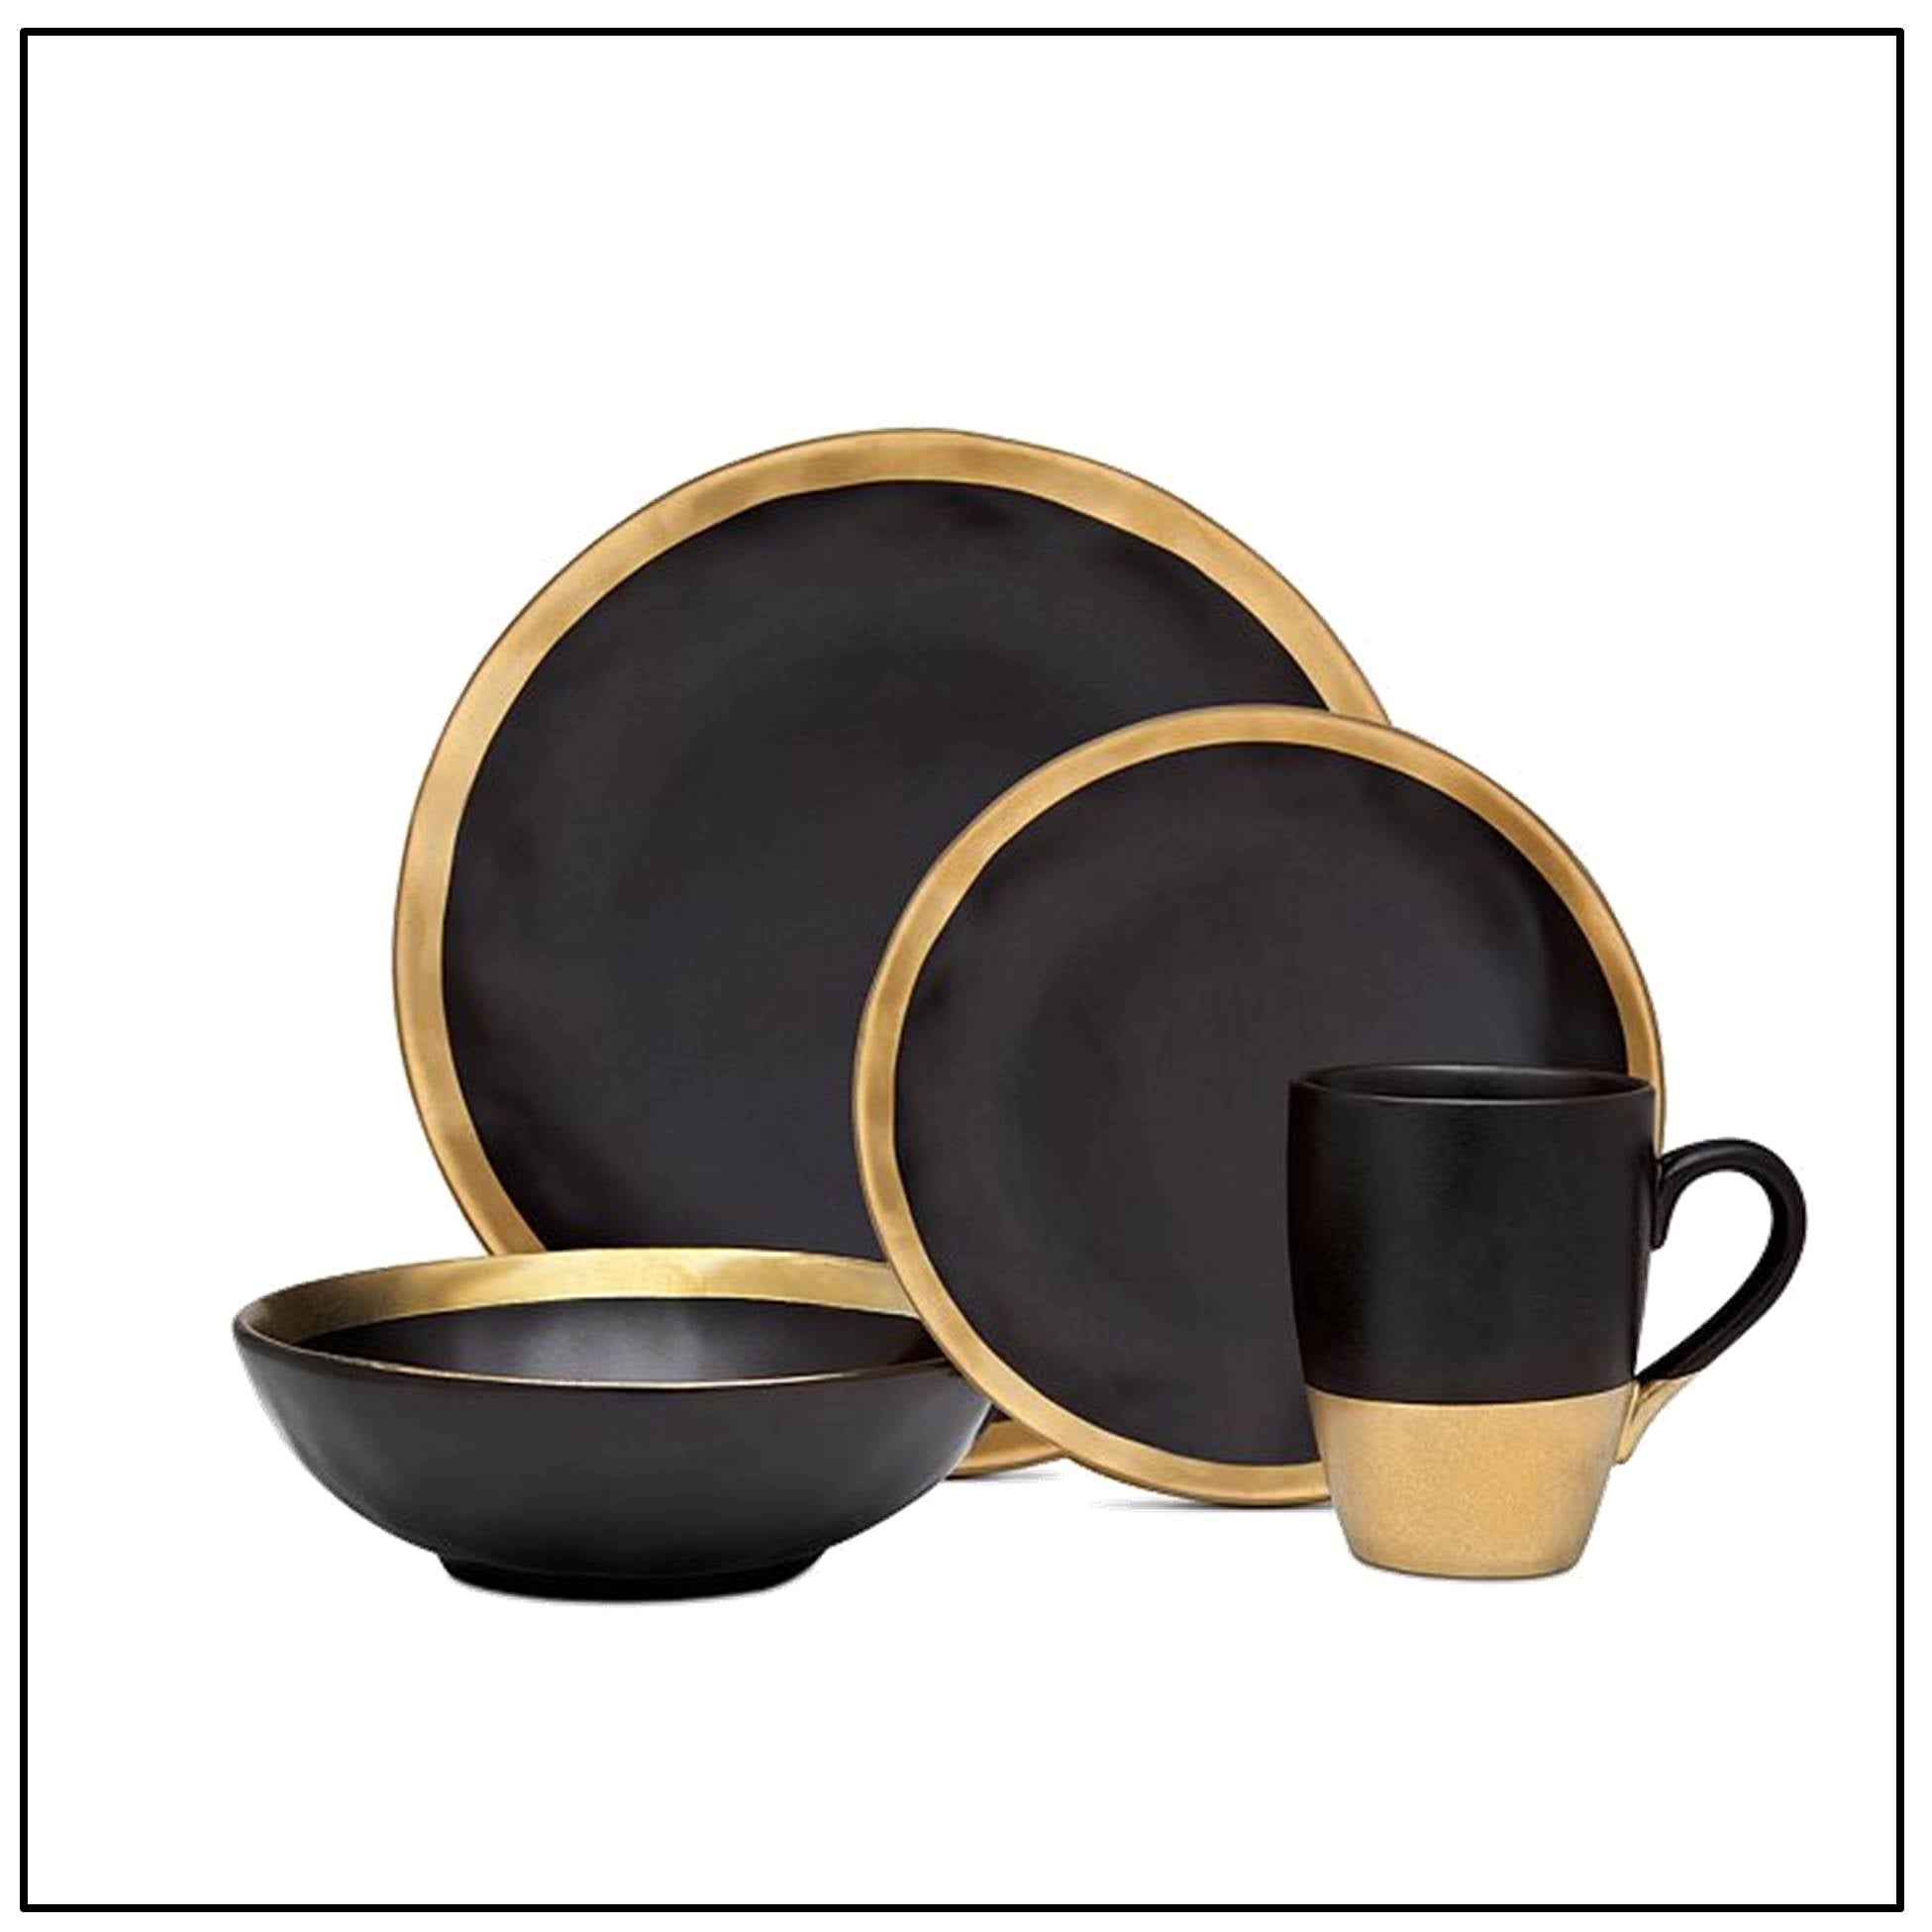 Gatherings Gold/Black 16pc, service for 4